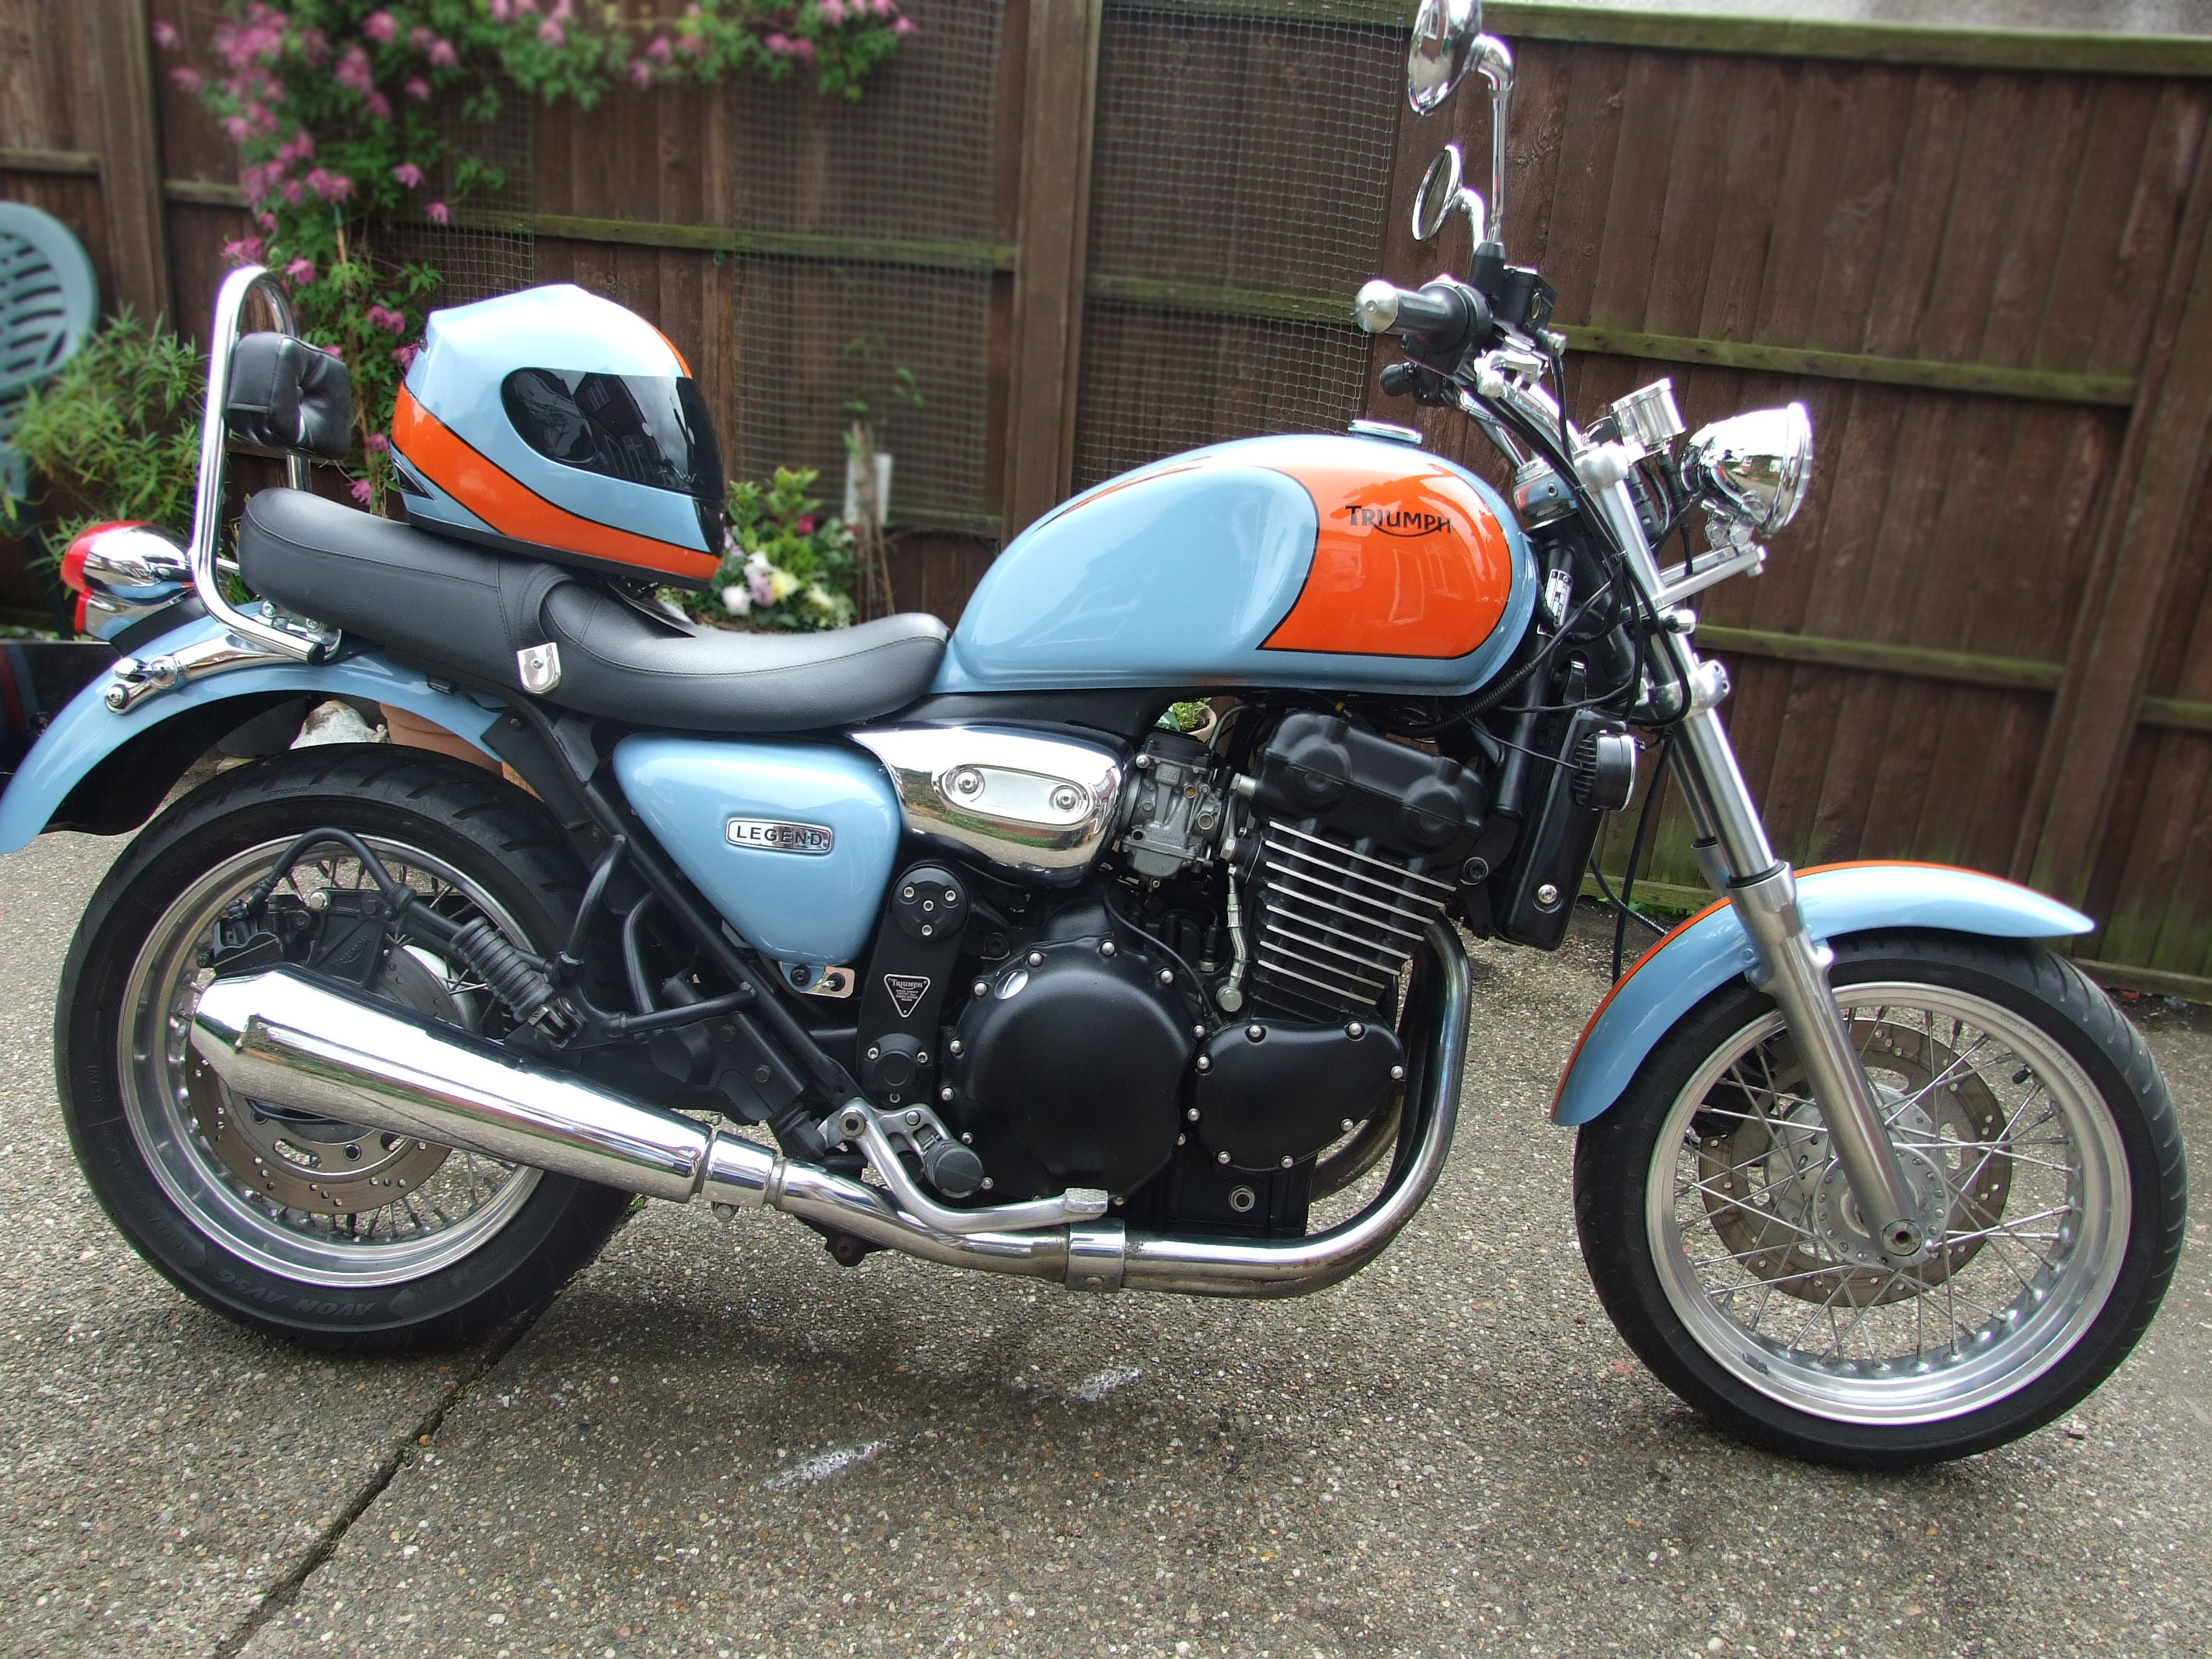 Triumph Legend TT 1999 images #159309